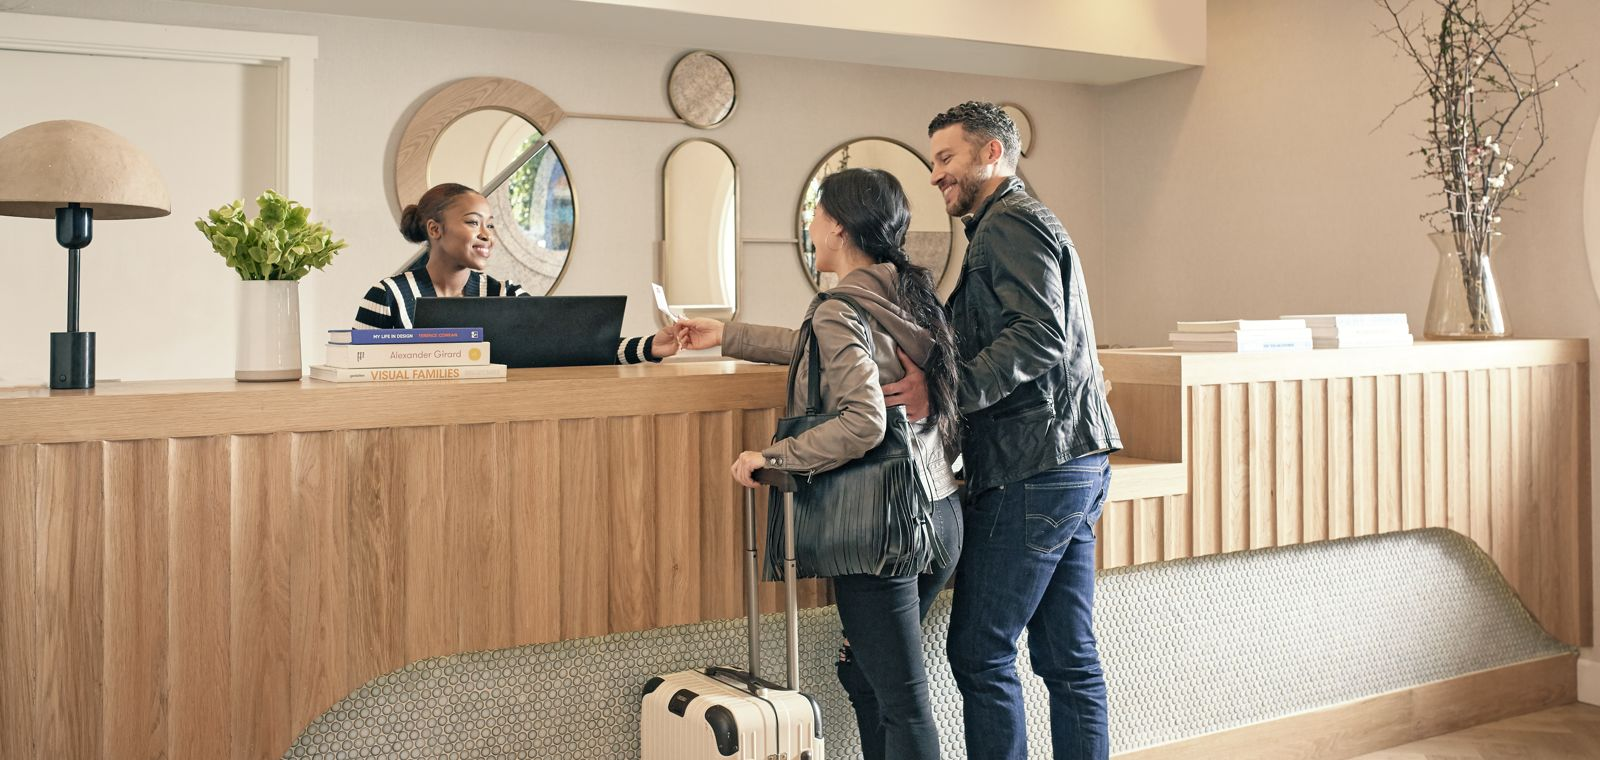 Waterfront-Hotel-couple-checking-in-lobby-Lifestyle